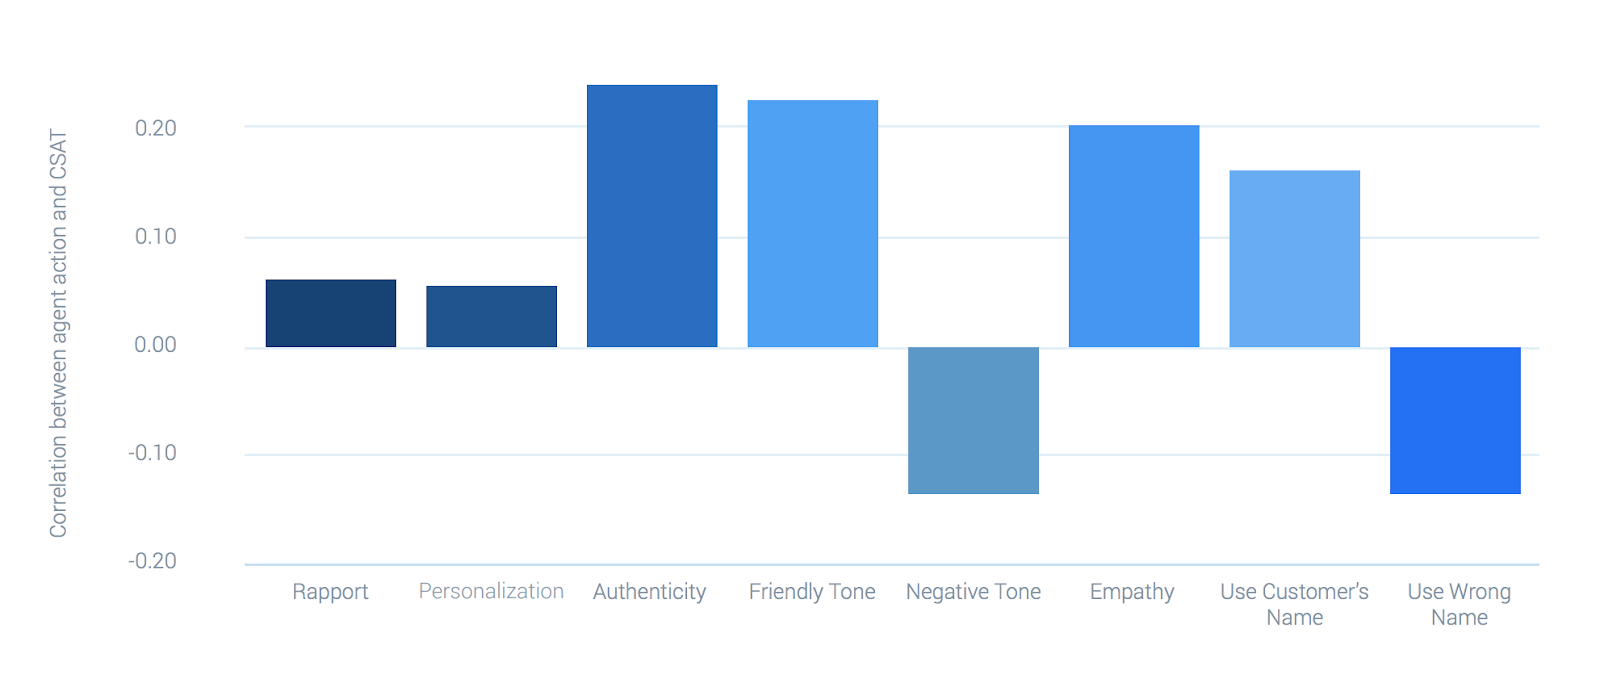 graph by MaestroQA showing correlations between customer service skills and customer satisfaction.